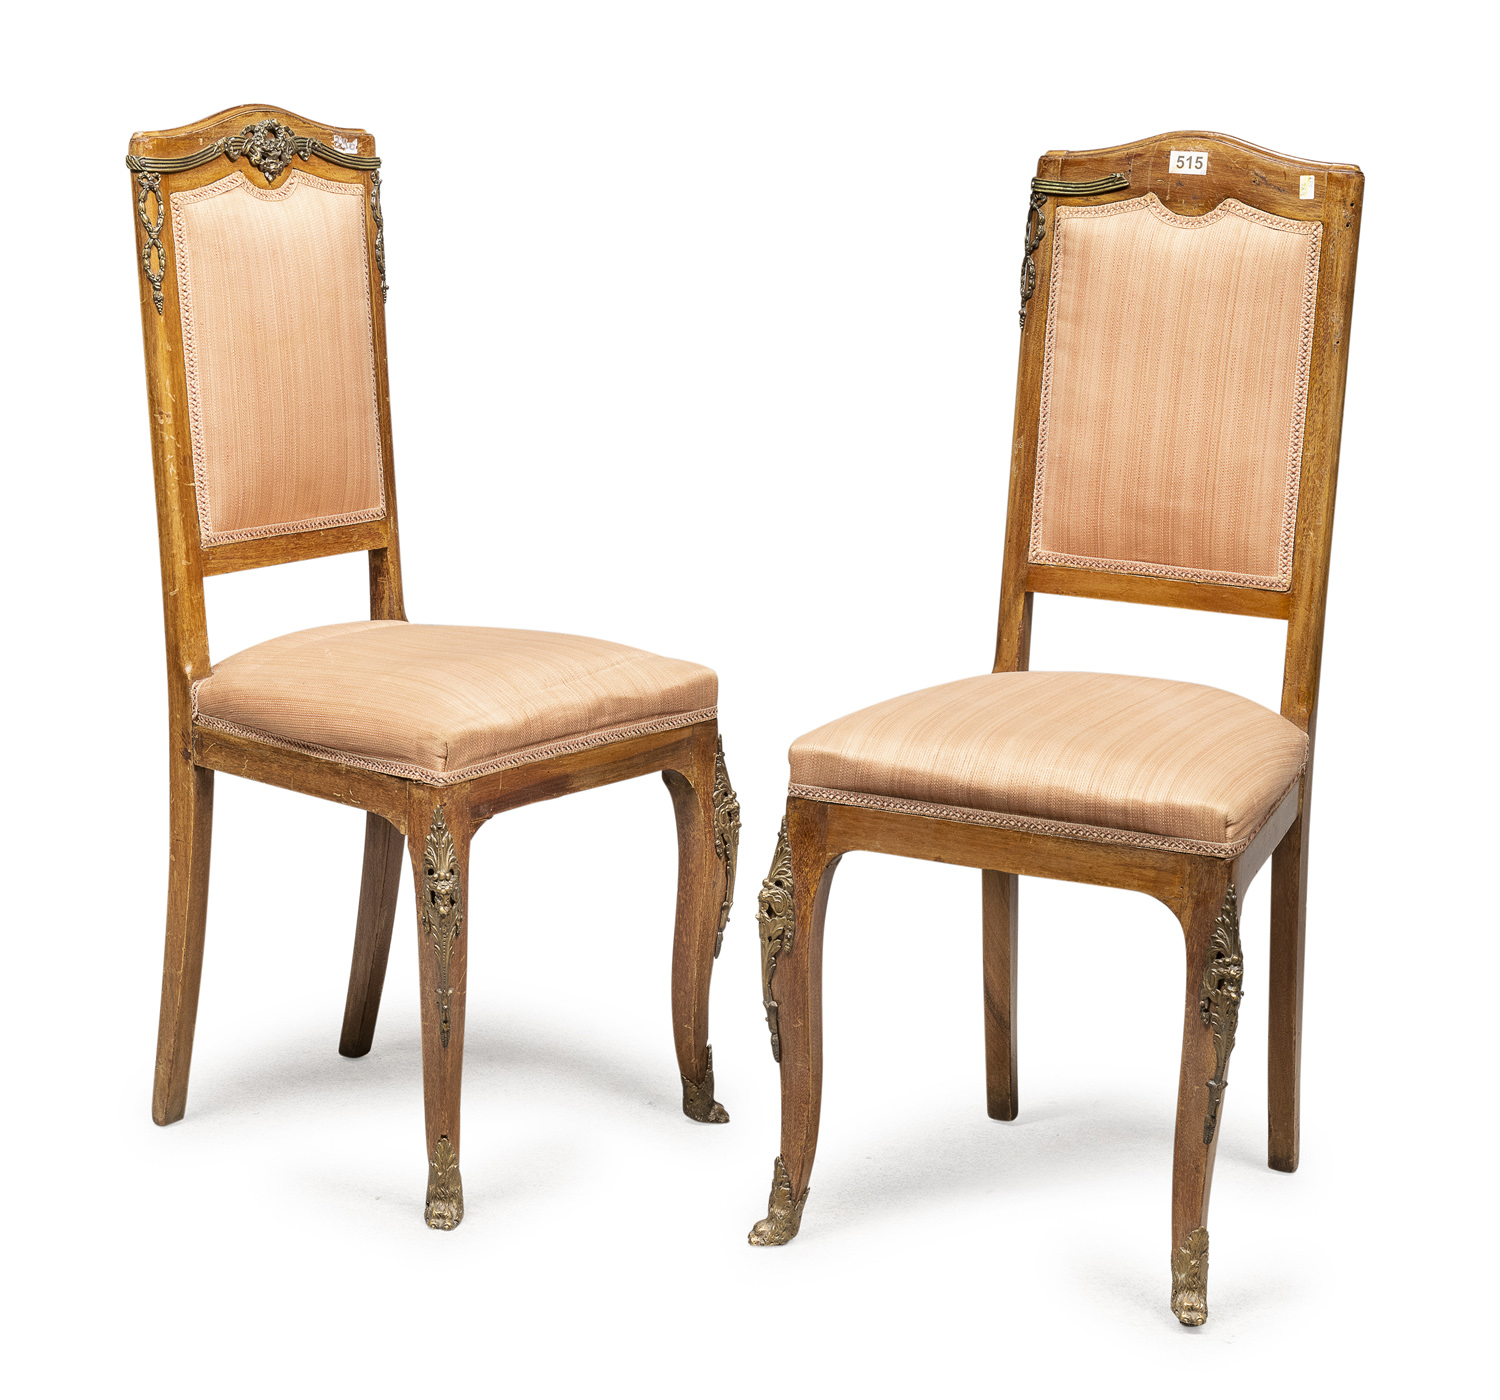 PAIR OF CHAIRS ca.1900